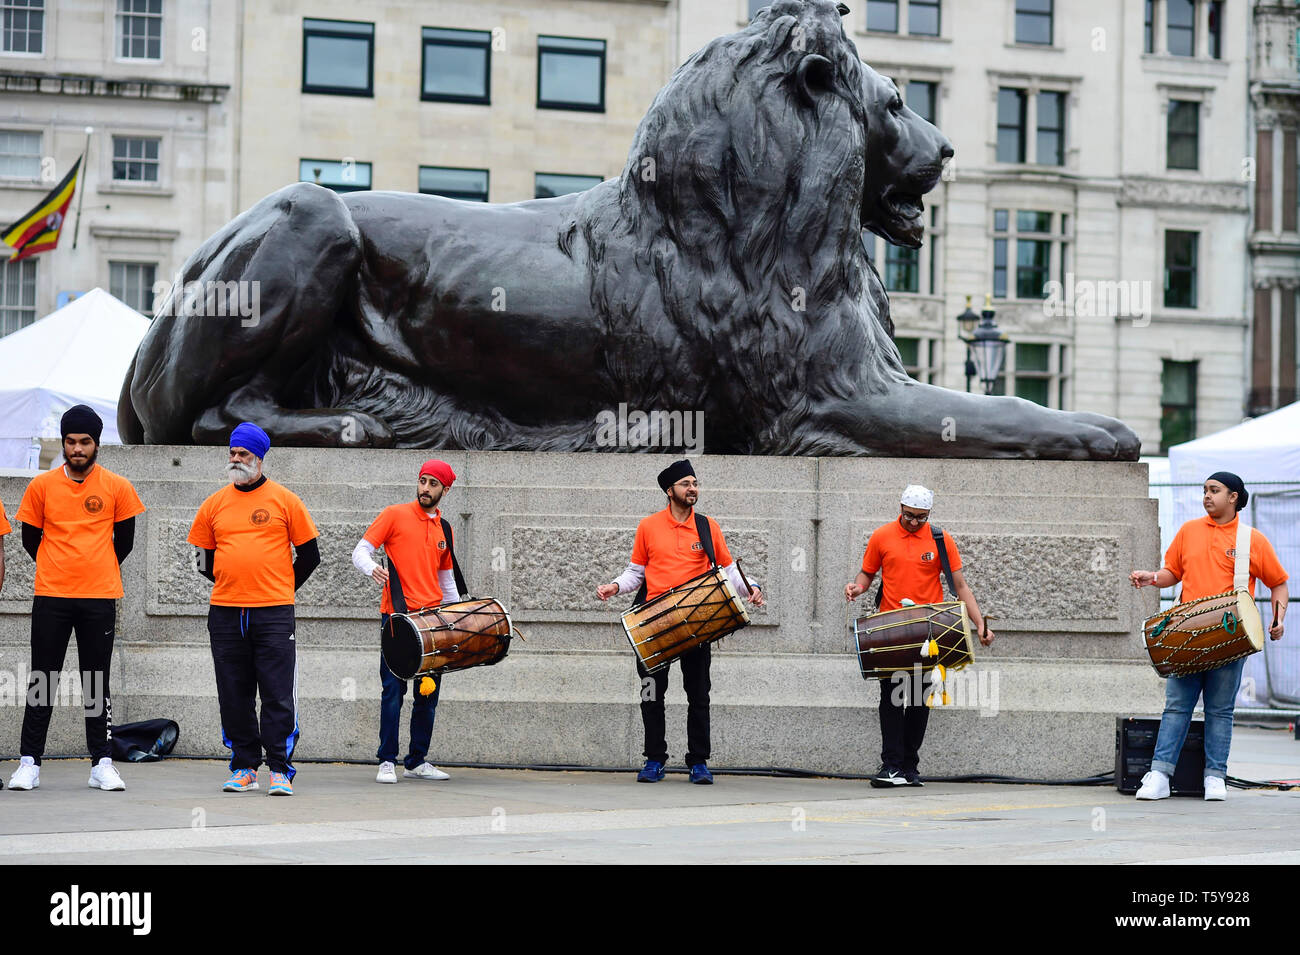 London, UK.  27 April 2019.  Drummers provide musical accompaniment to a performance of Gatka, Sikh martial arts, during the festival of Vaisakhi in Trafalgar Square, hosted by the Mayor of London.  For Sikhs and Punjabis, the festival celebrates the spring harvest and commemorates the founding of the Khalsa community over 300 years ago.   Credit: Stephen Chung / Alamy Live News - Stock Image